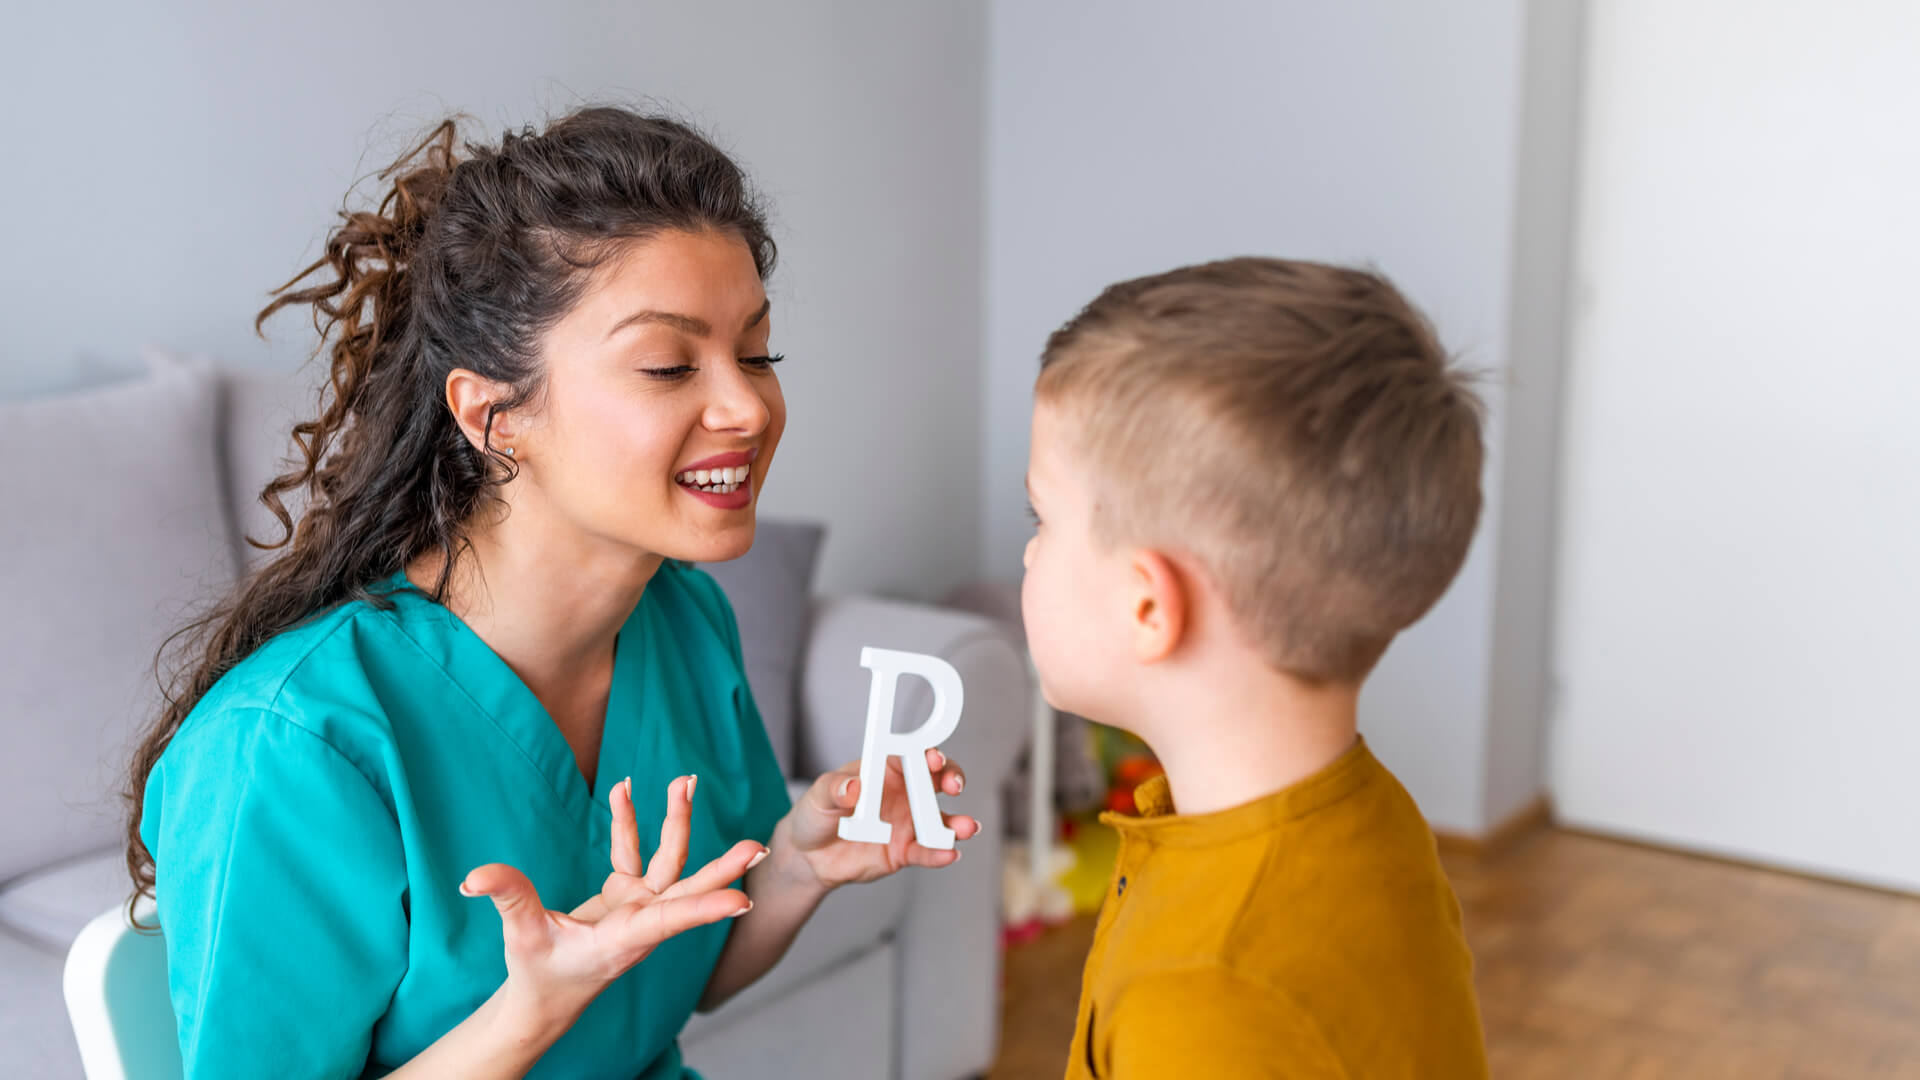 R Articulation Speech Therapy